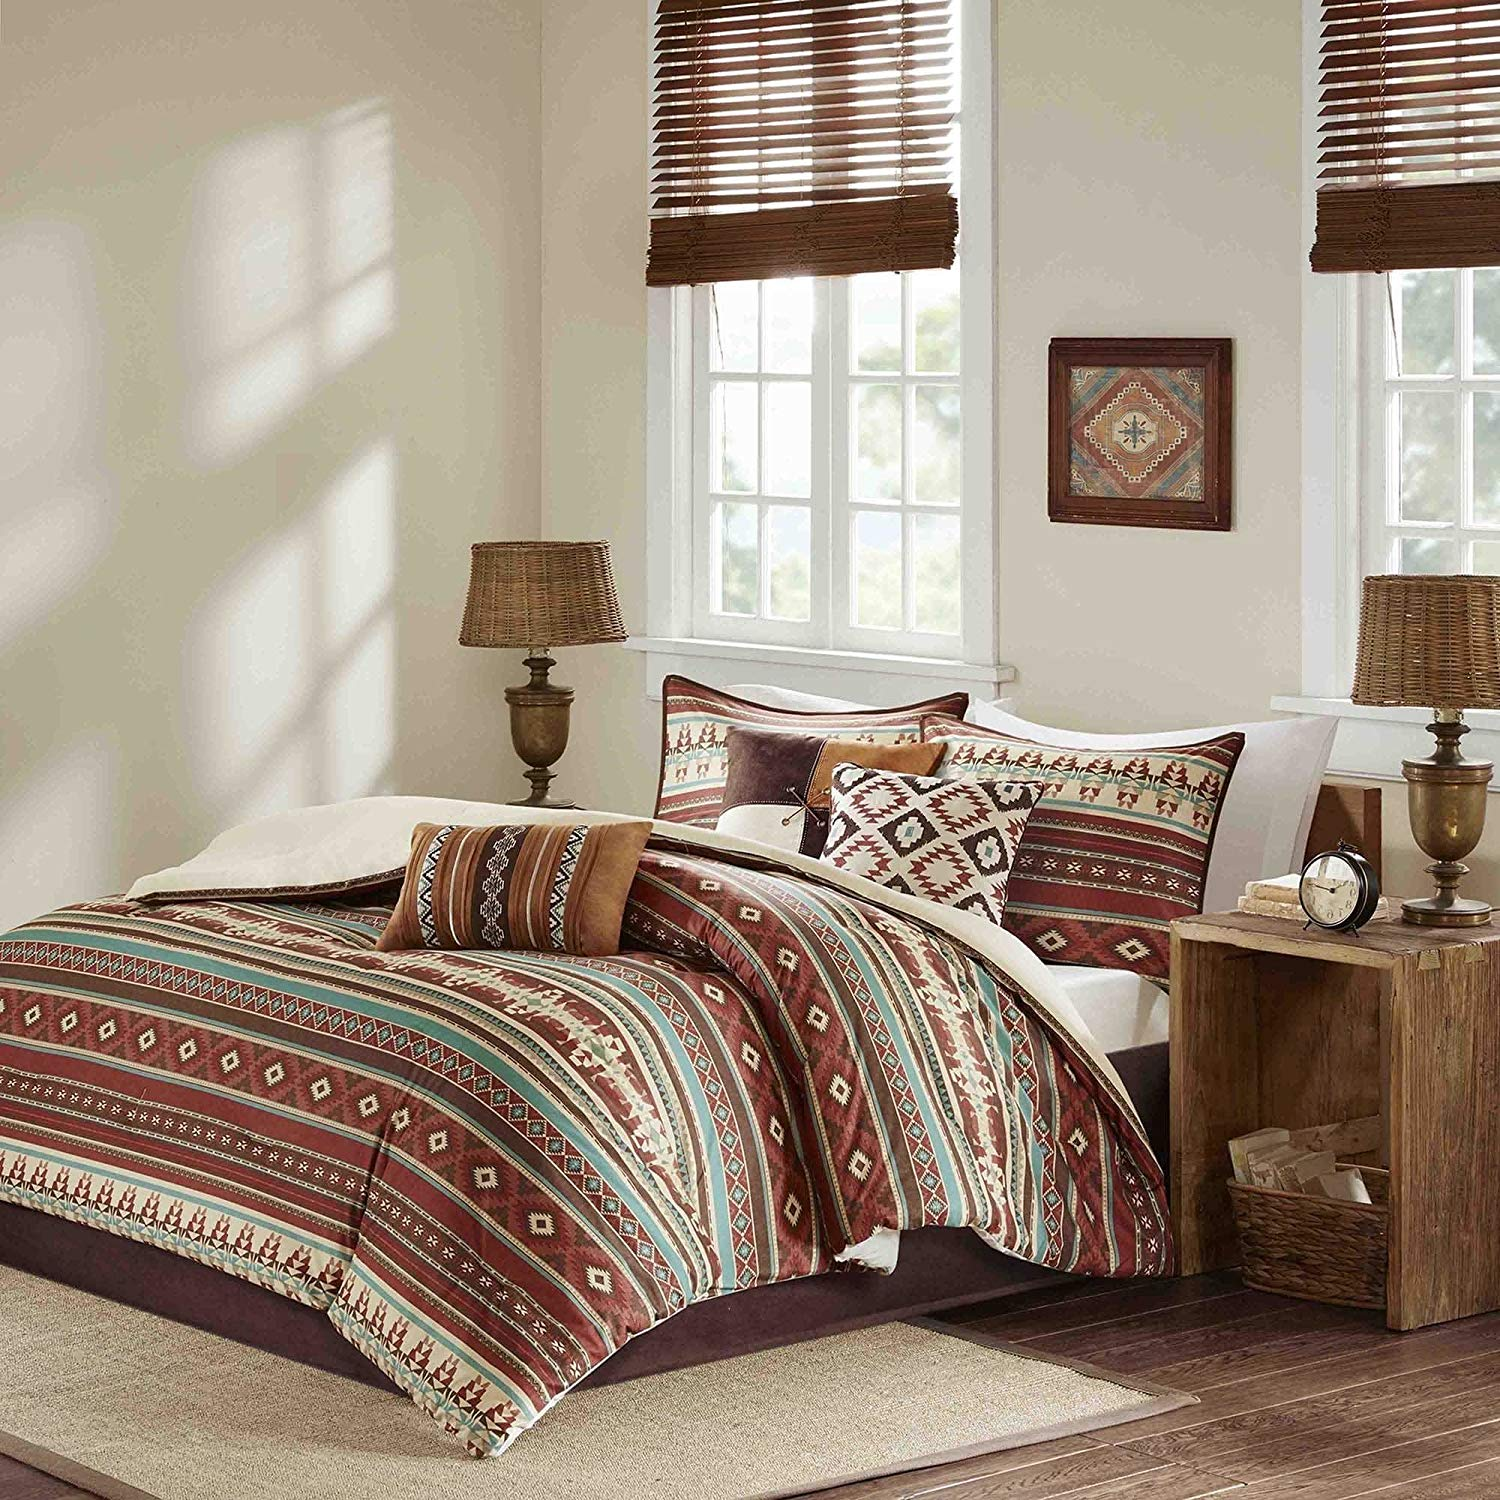 7 Piece Blue Brown Red Striped Comforter Queen Set, Spice White Cabin Bedding Lodge Diamond Print Bed in A Bag for Master Bedroom Cottage Southwestern Colorful Modern, Polyester